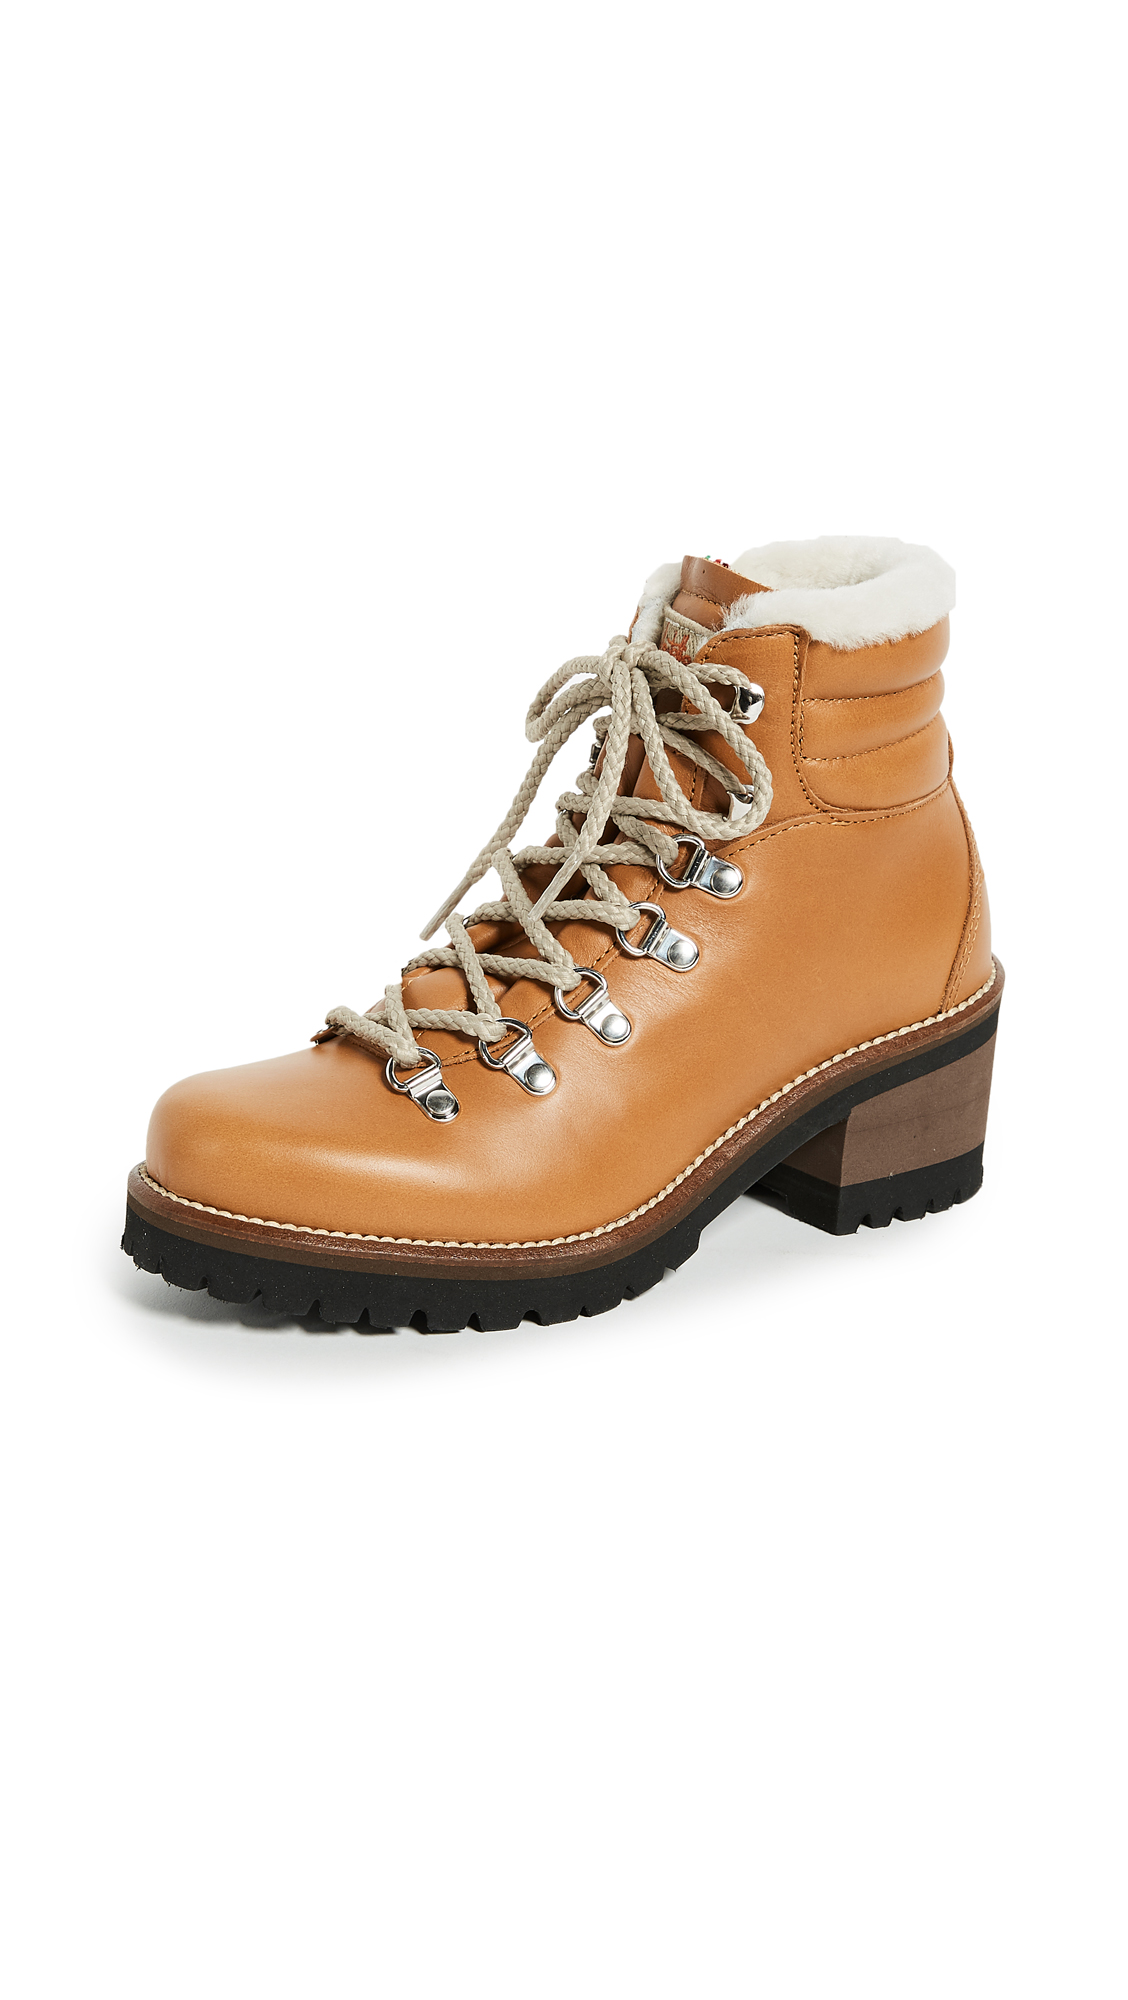 Montelliana Ninfea Heeled Hiker Boots - Tan